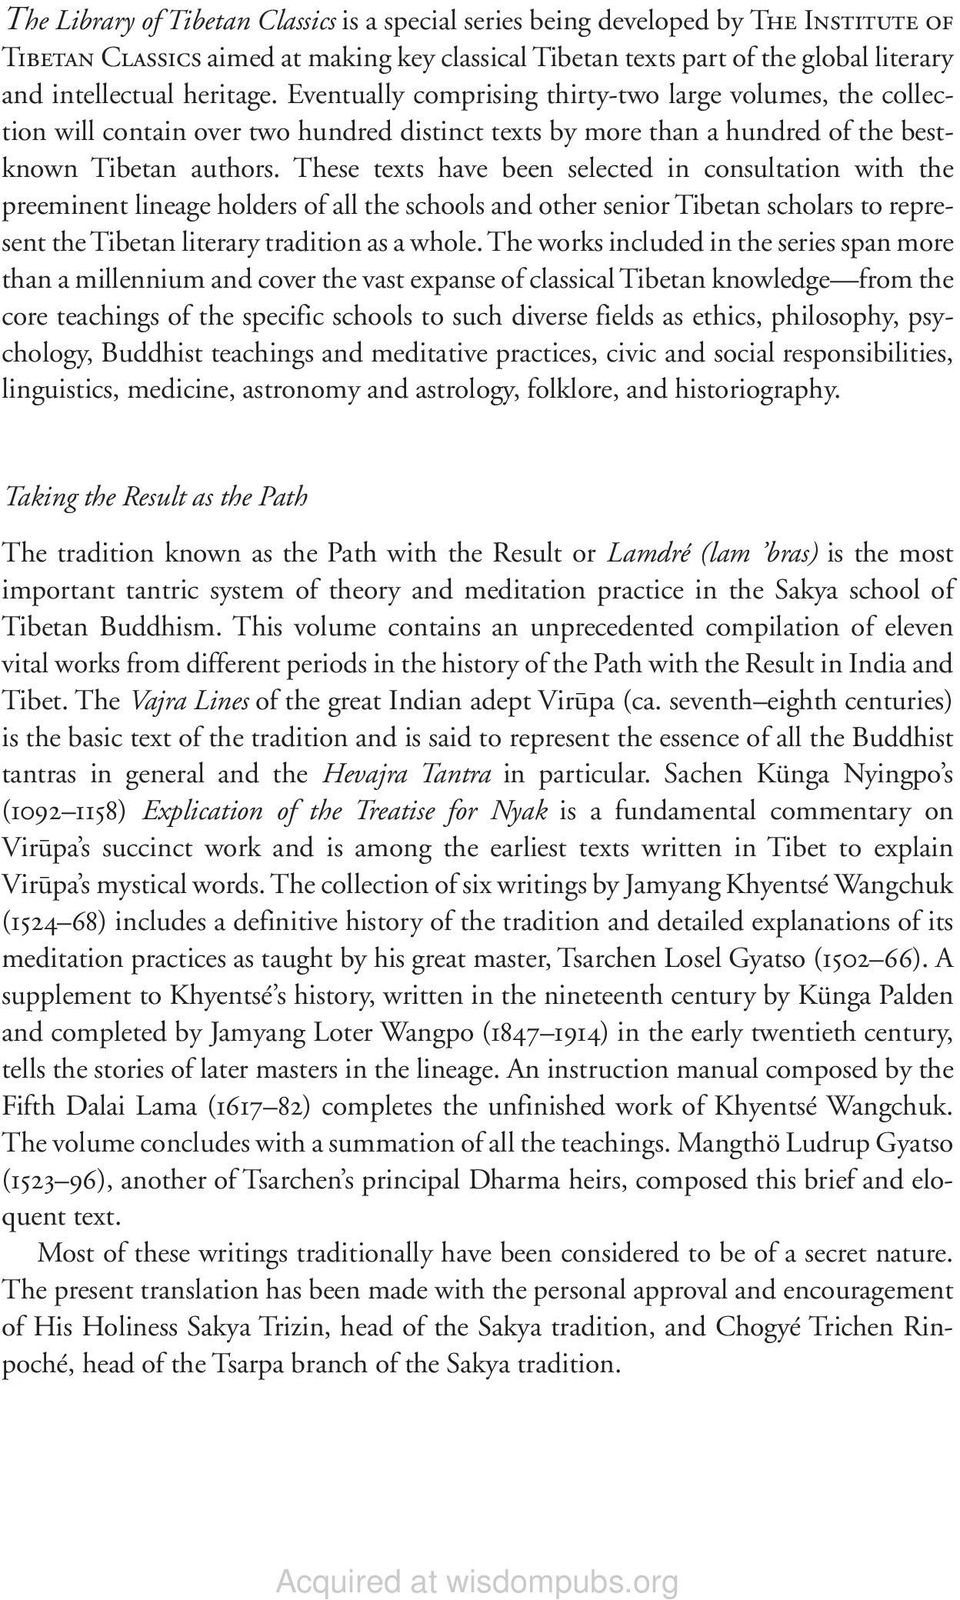 These texts have been selected in consultation with the preeminent lineage holders of all the schools and other senior Tibetan scholars to represent the Tibetan literary tradition as a whole.